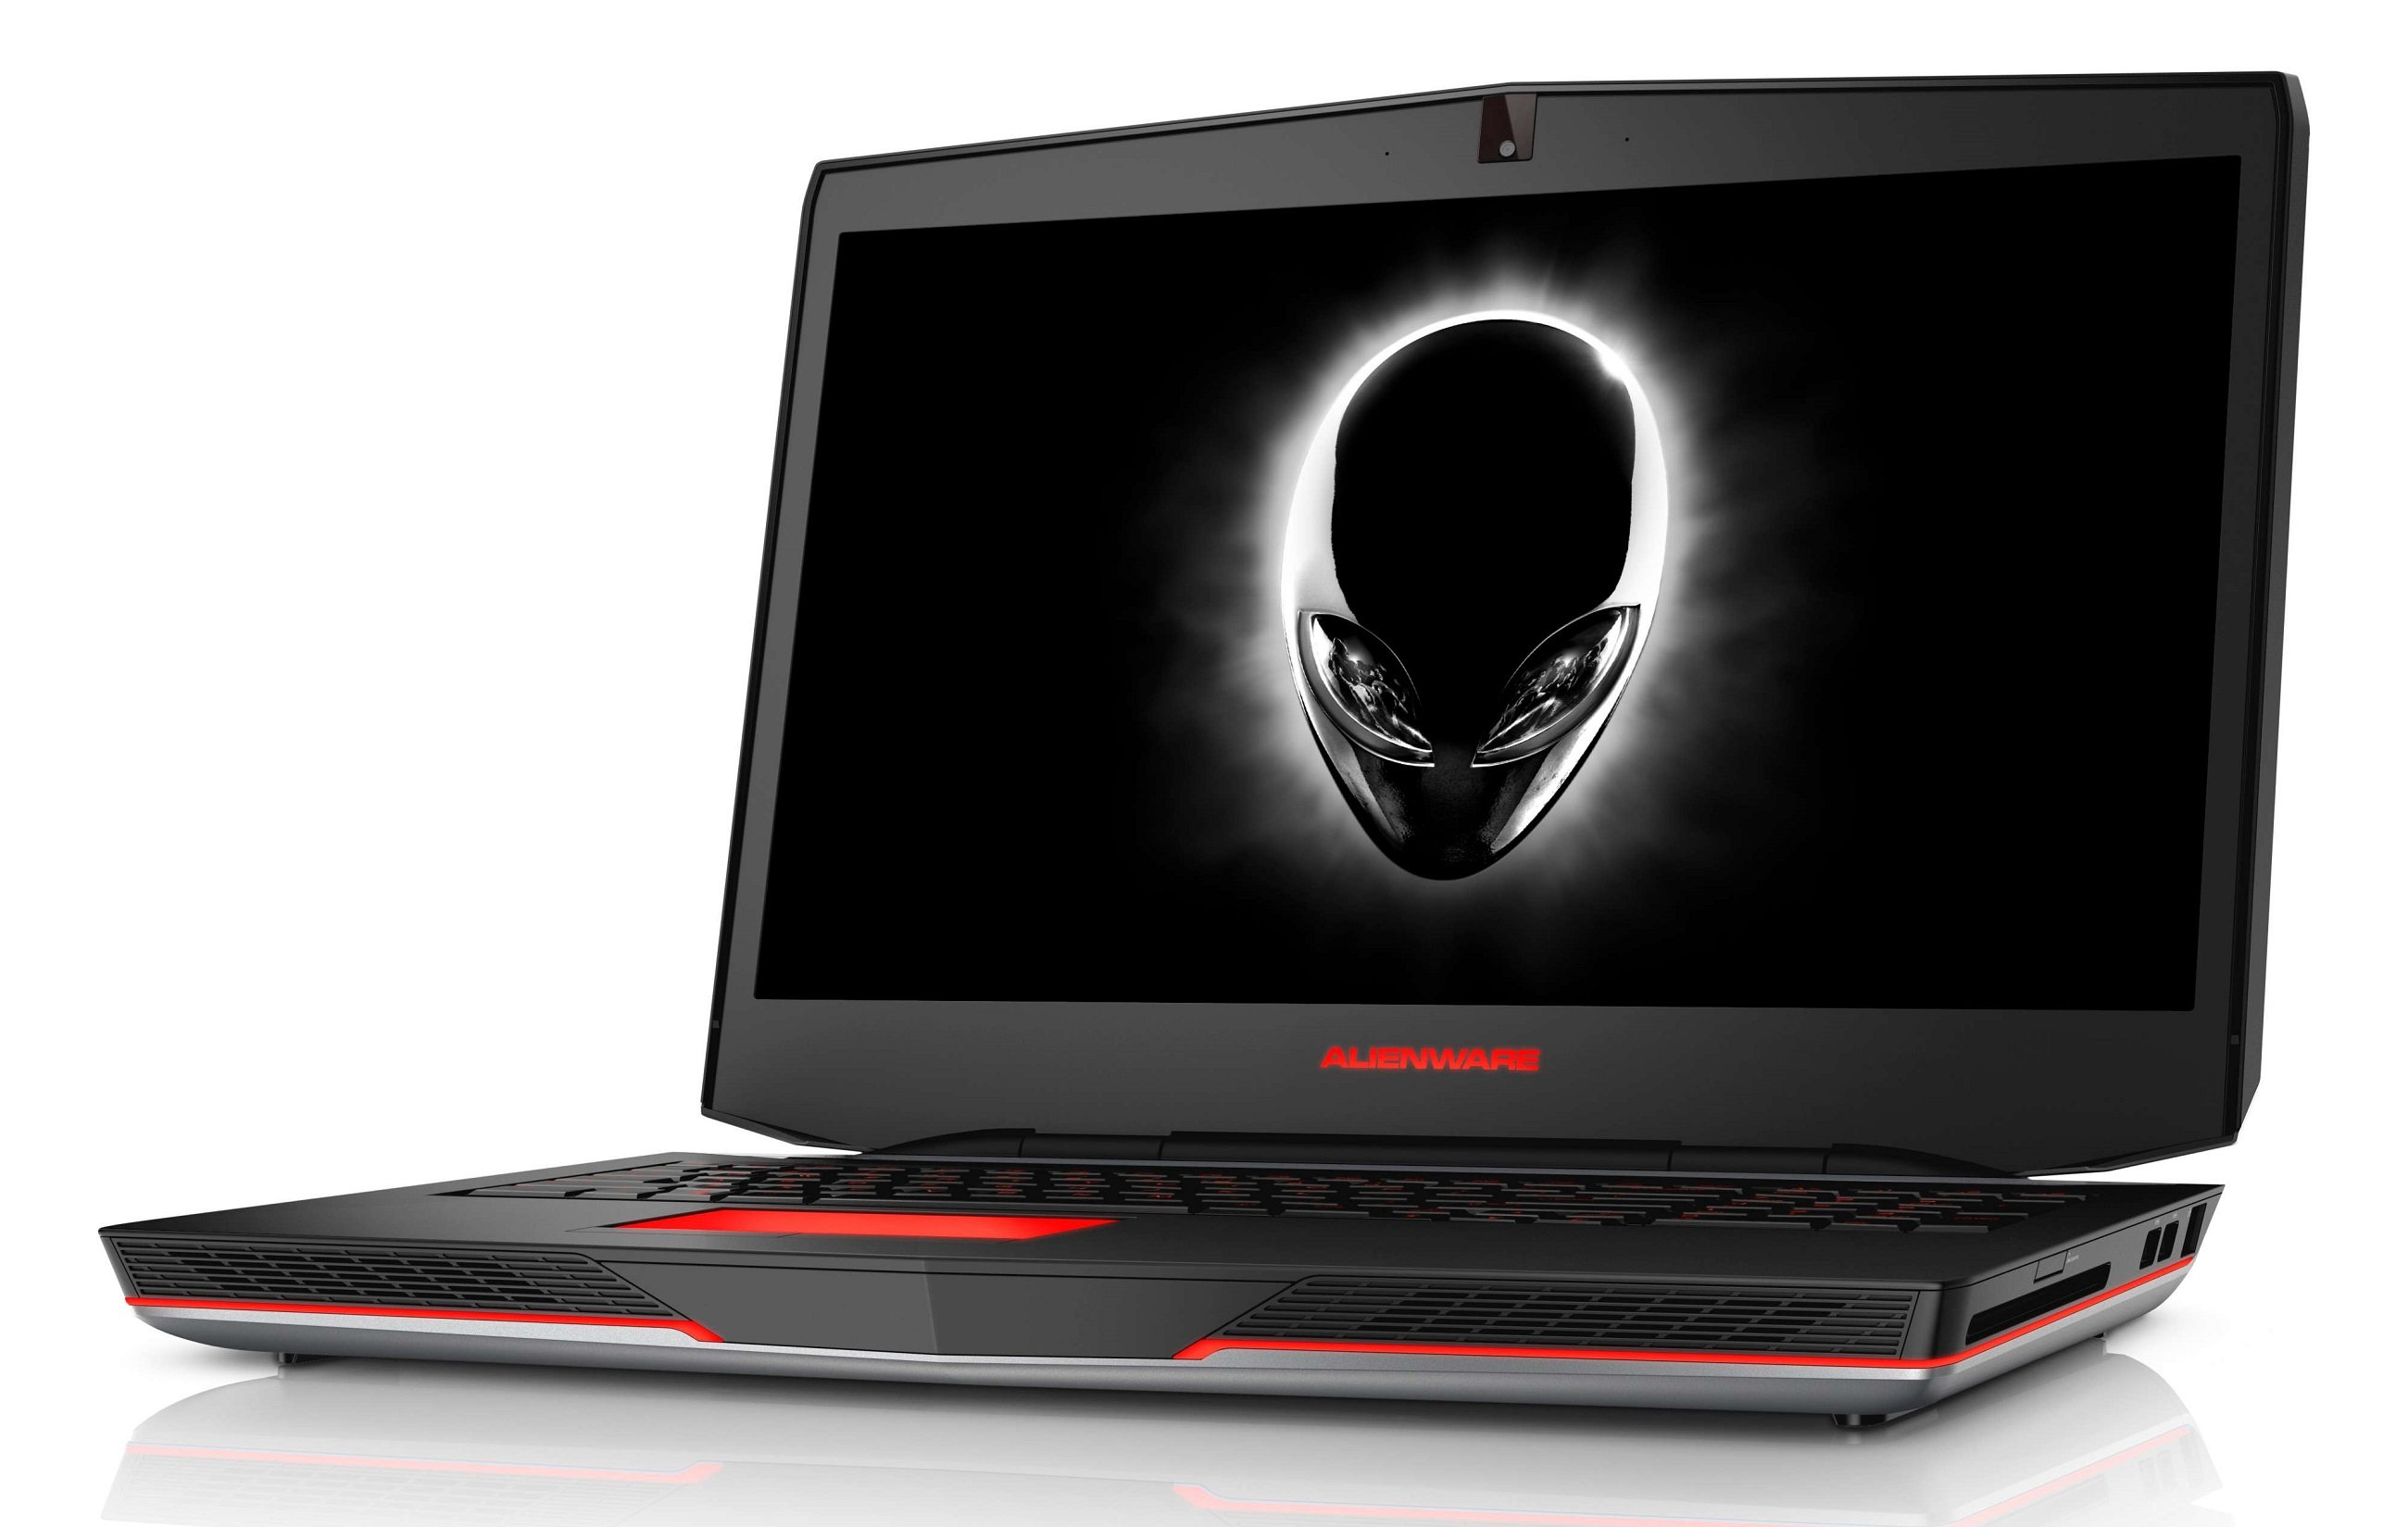 The best gaming laptop and PC deals during Black Friday 2018